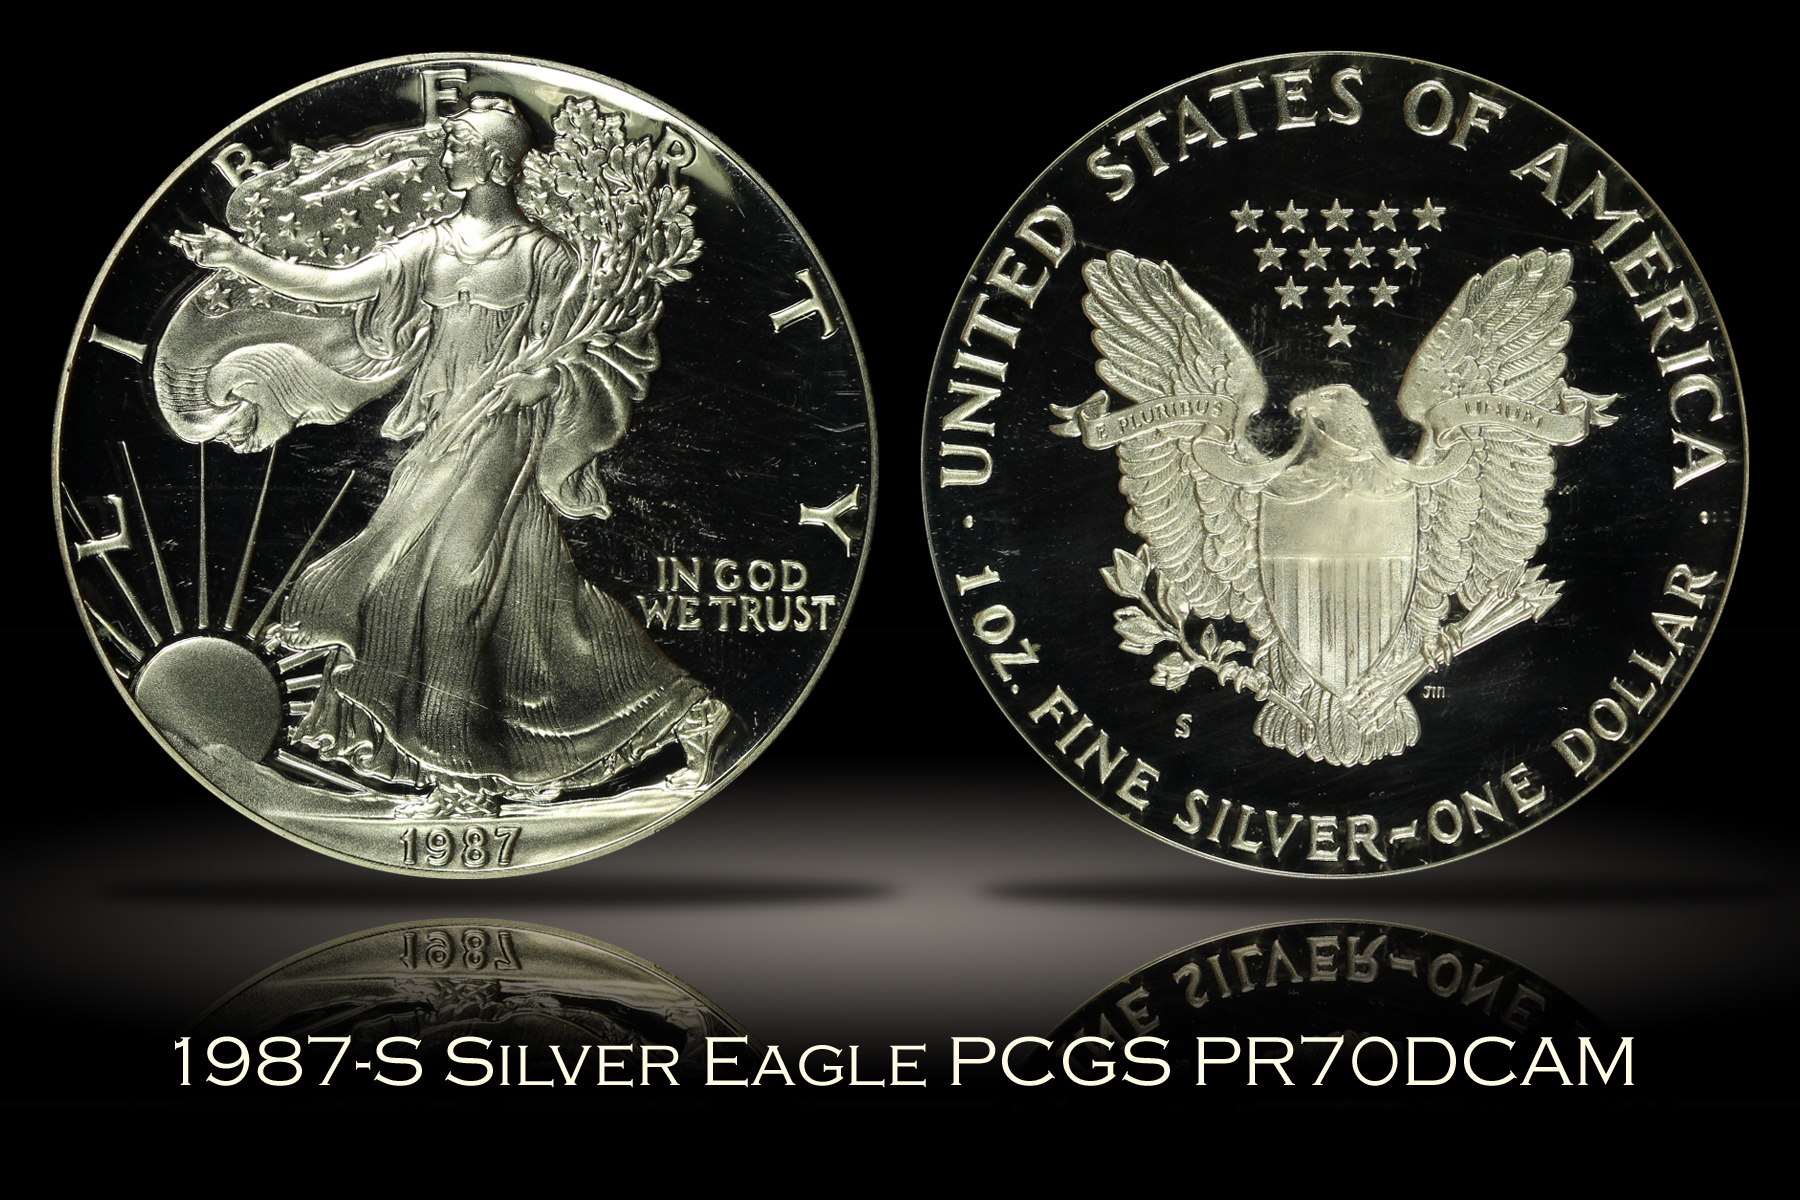 1987-S Proof Silver Eagle PCGS PR70DCAM